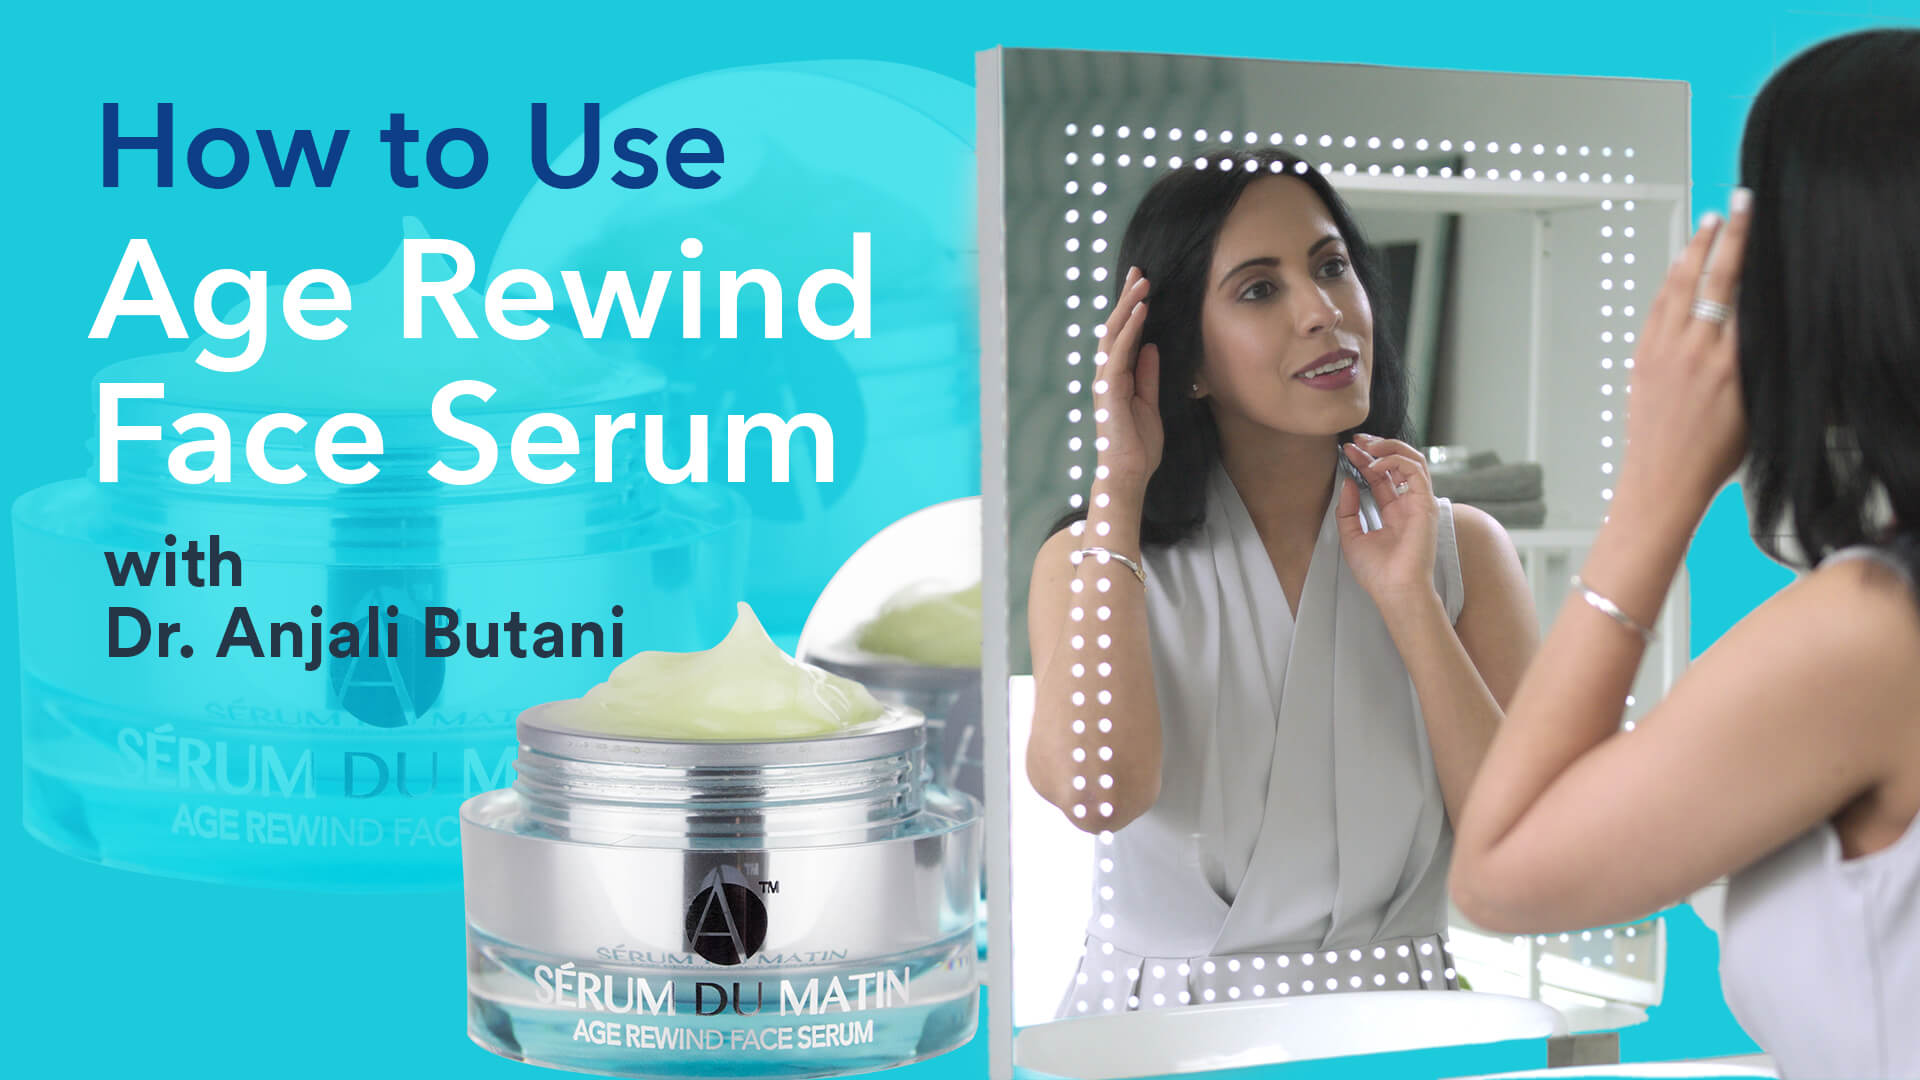 Age Rewind Face Serum How To Use Video